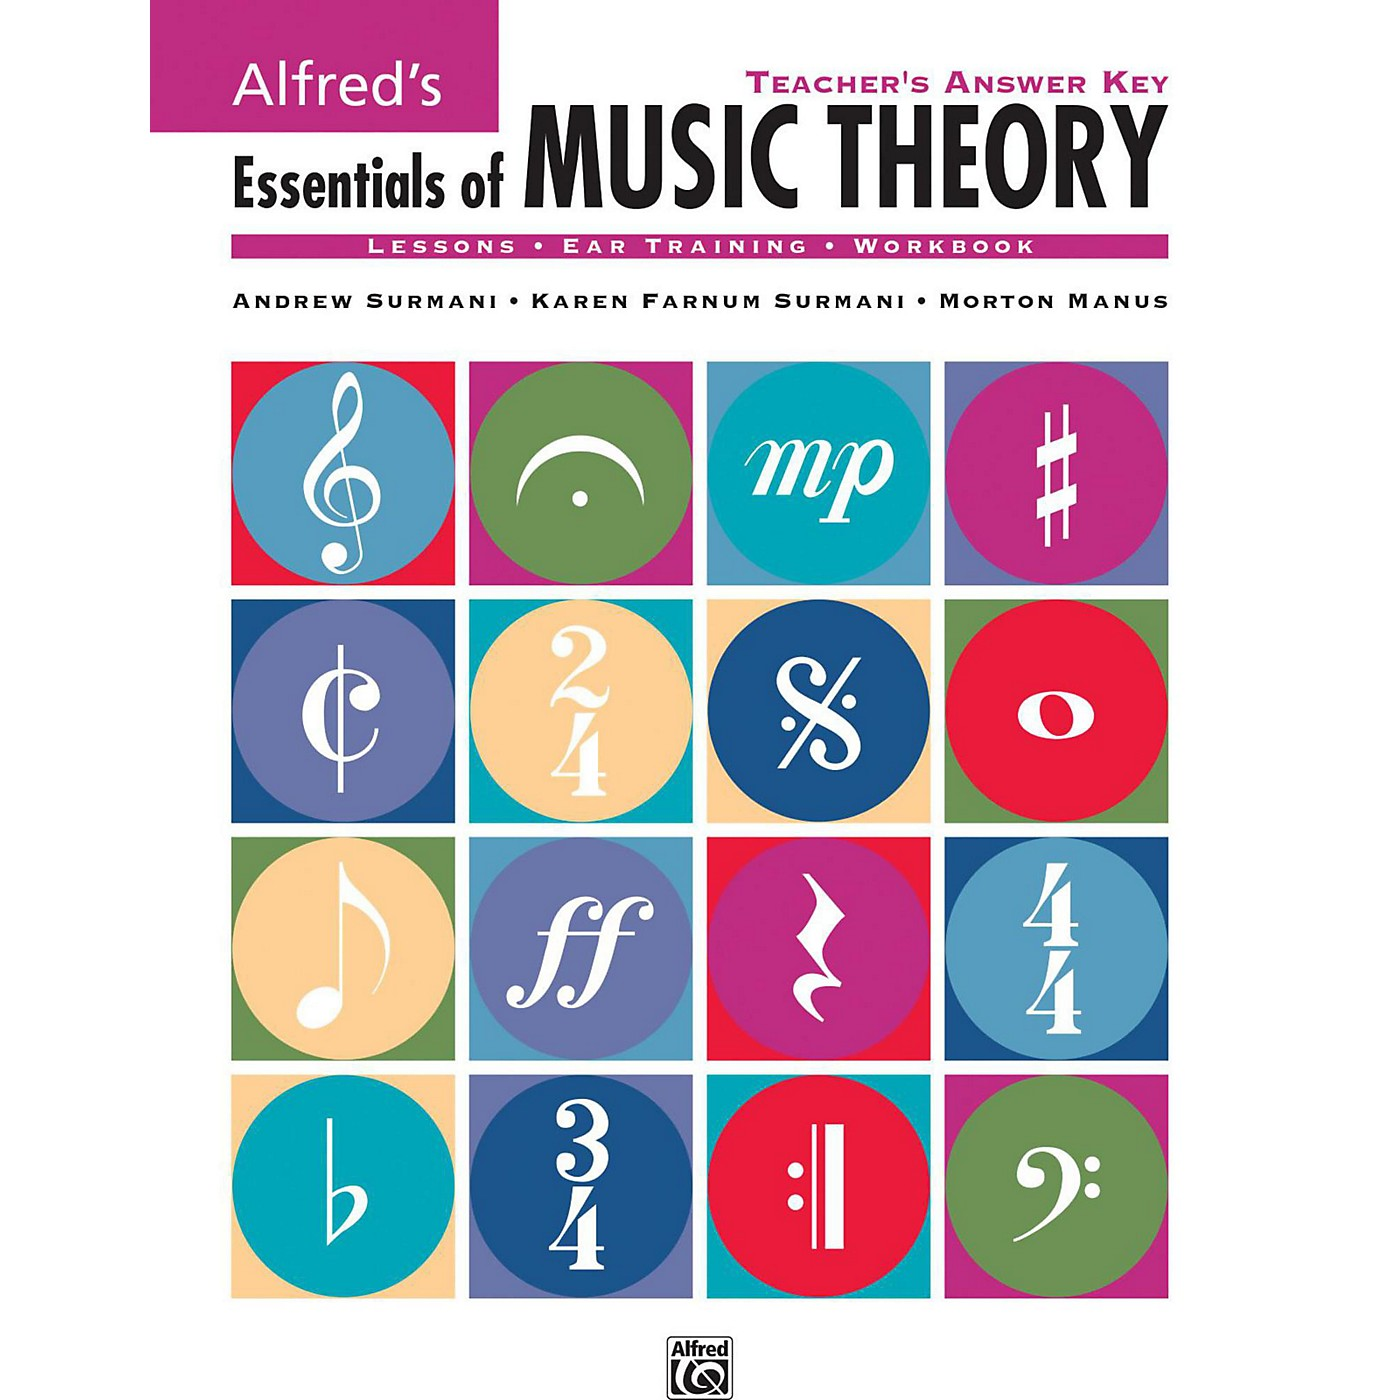 Alfred Alfred's Essentials of Music Theory: Teacher's Answer Key Book & 2 Ear Training CDs thumbnail